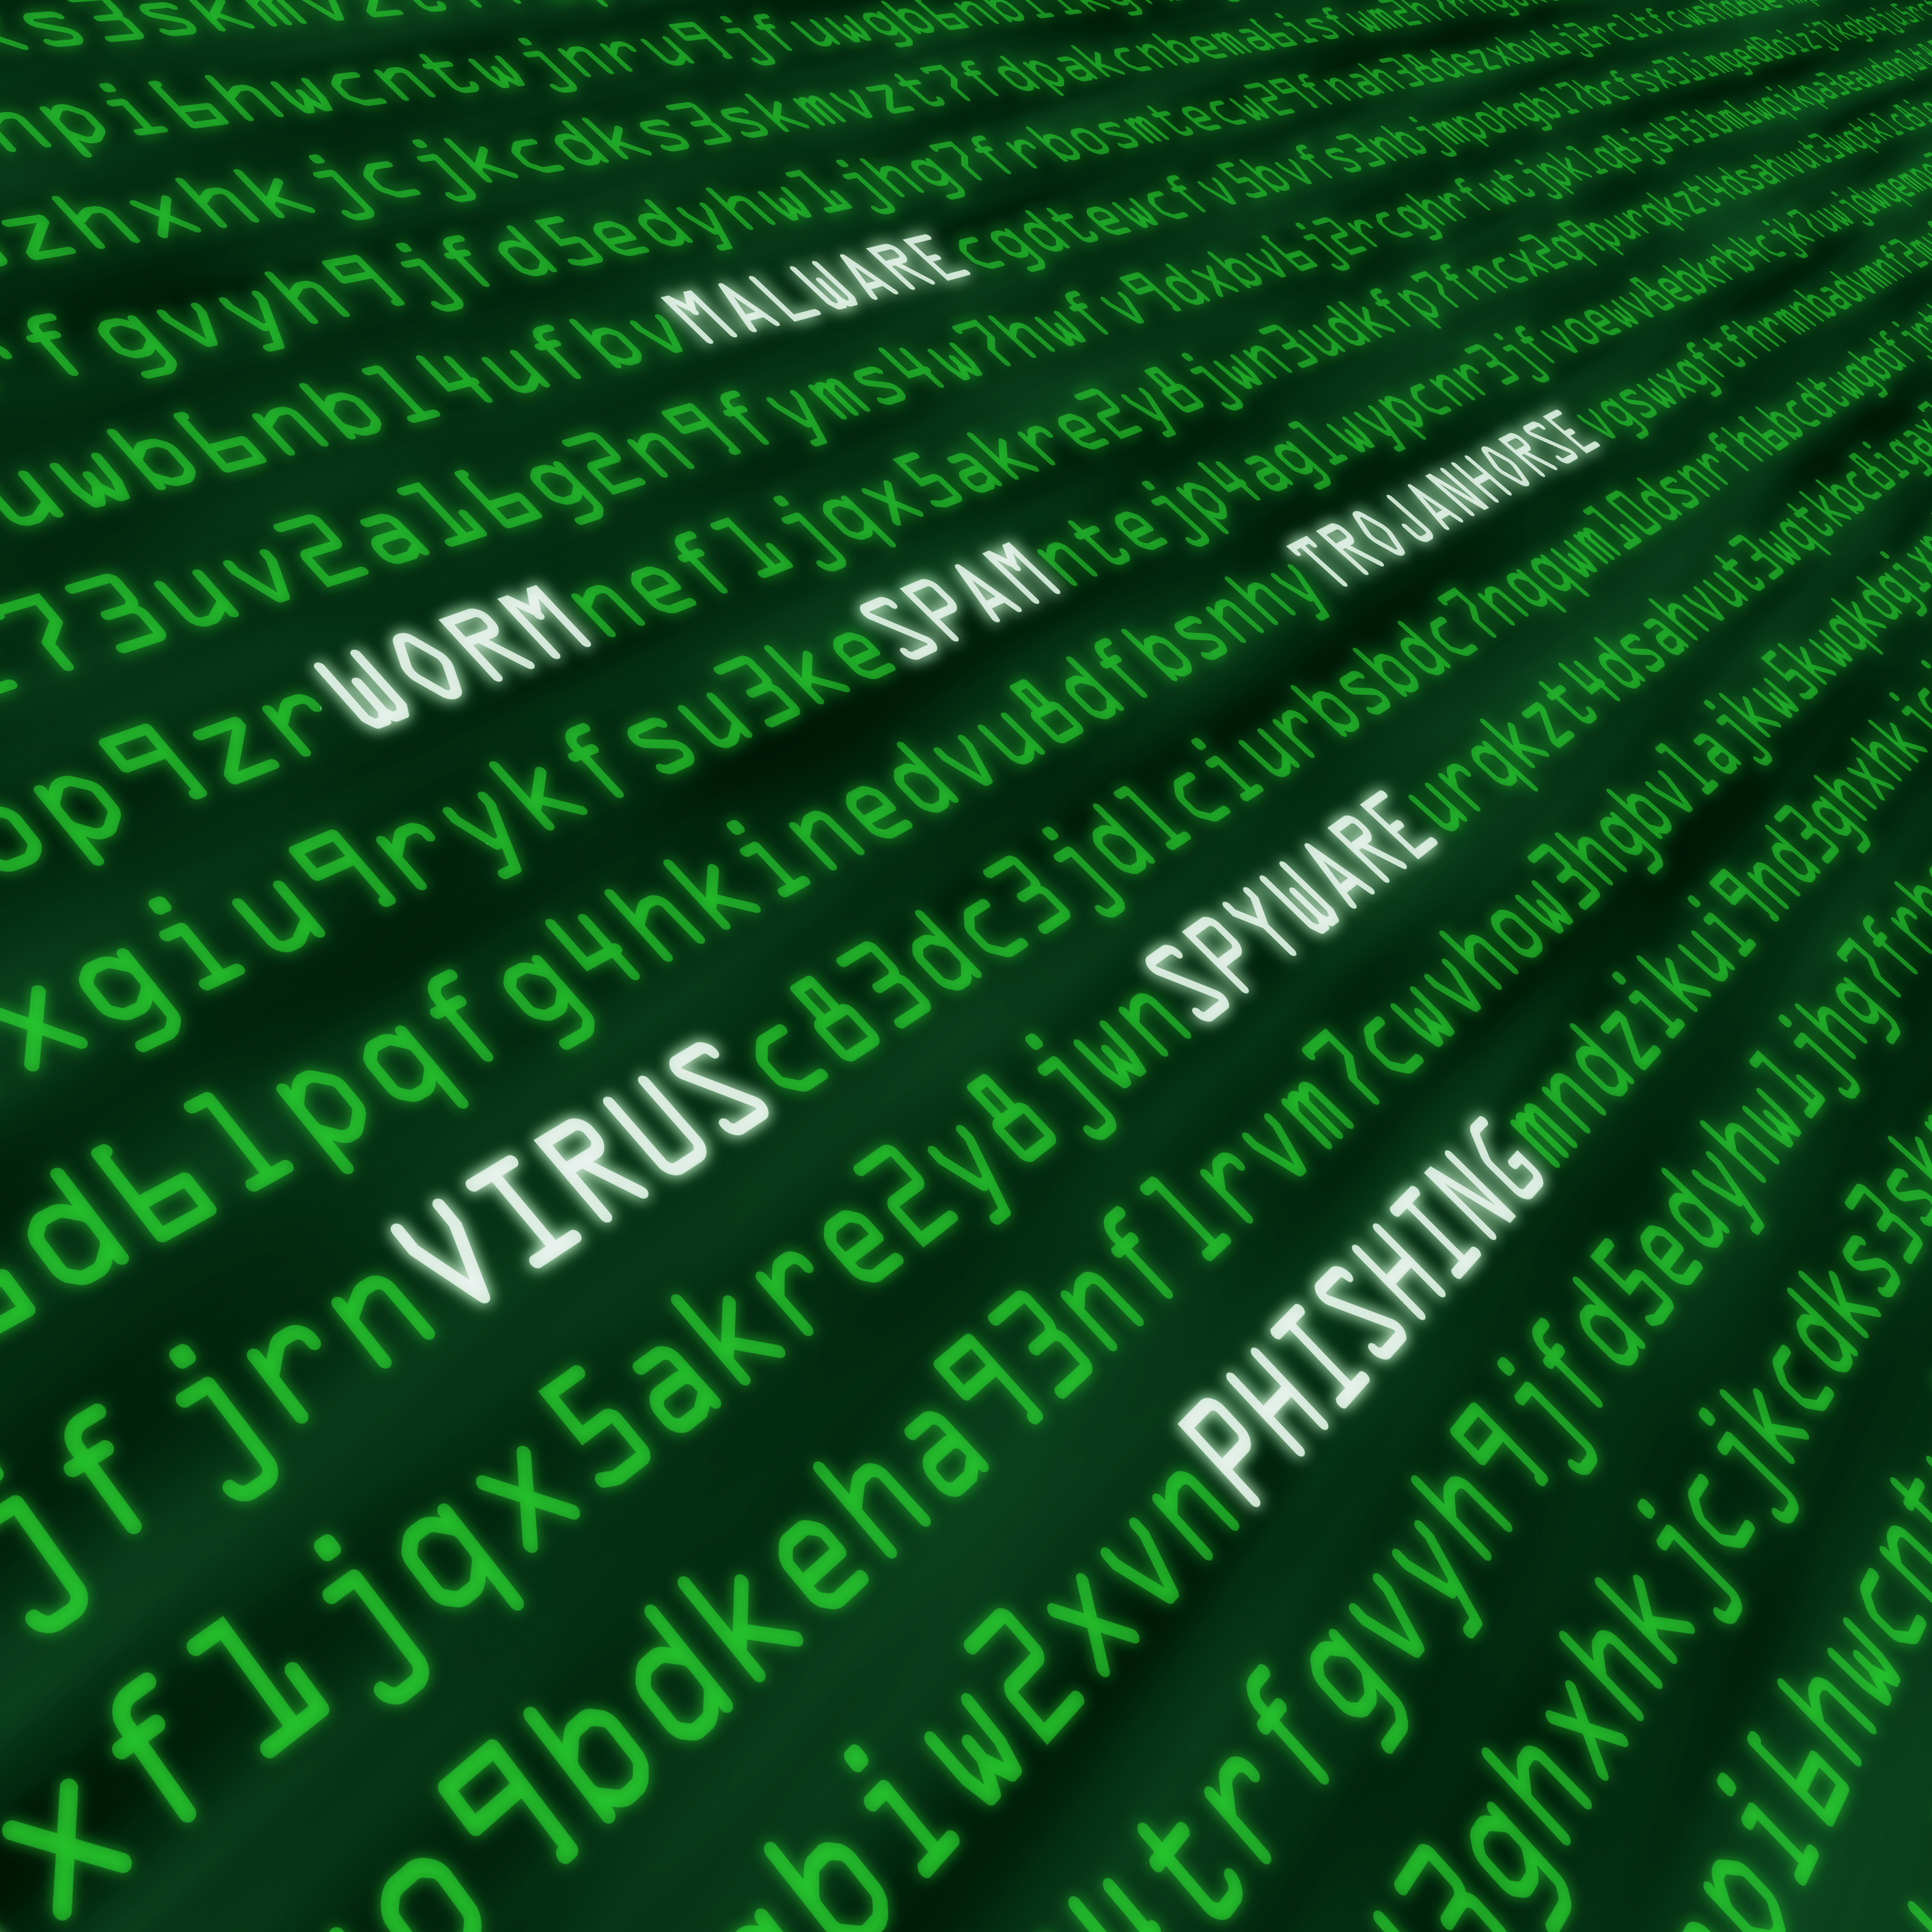 cyber attack methods embedded in code